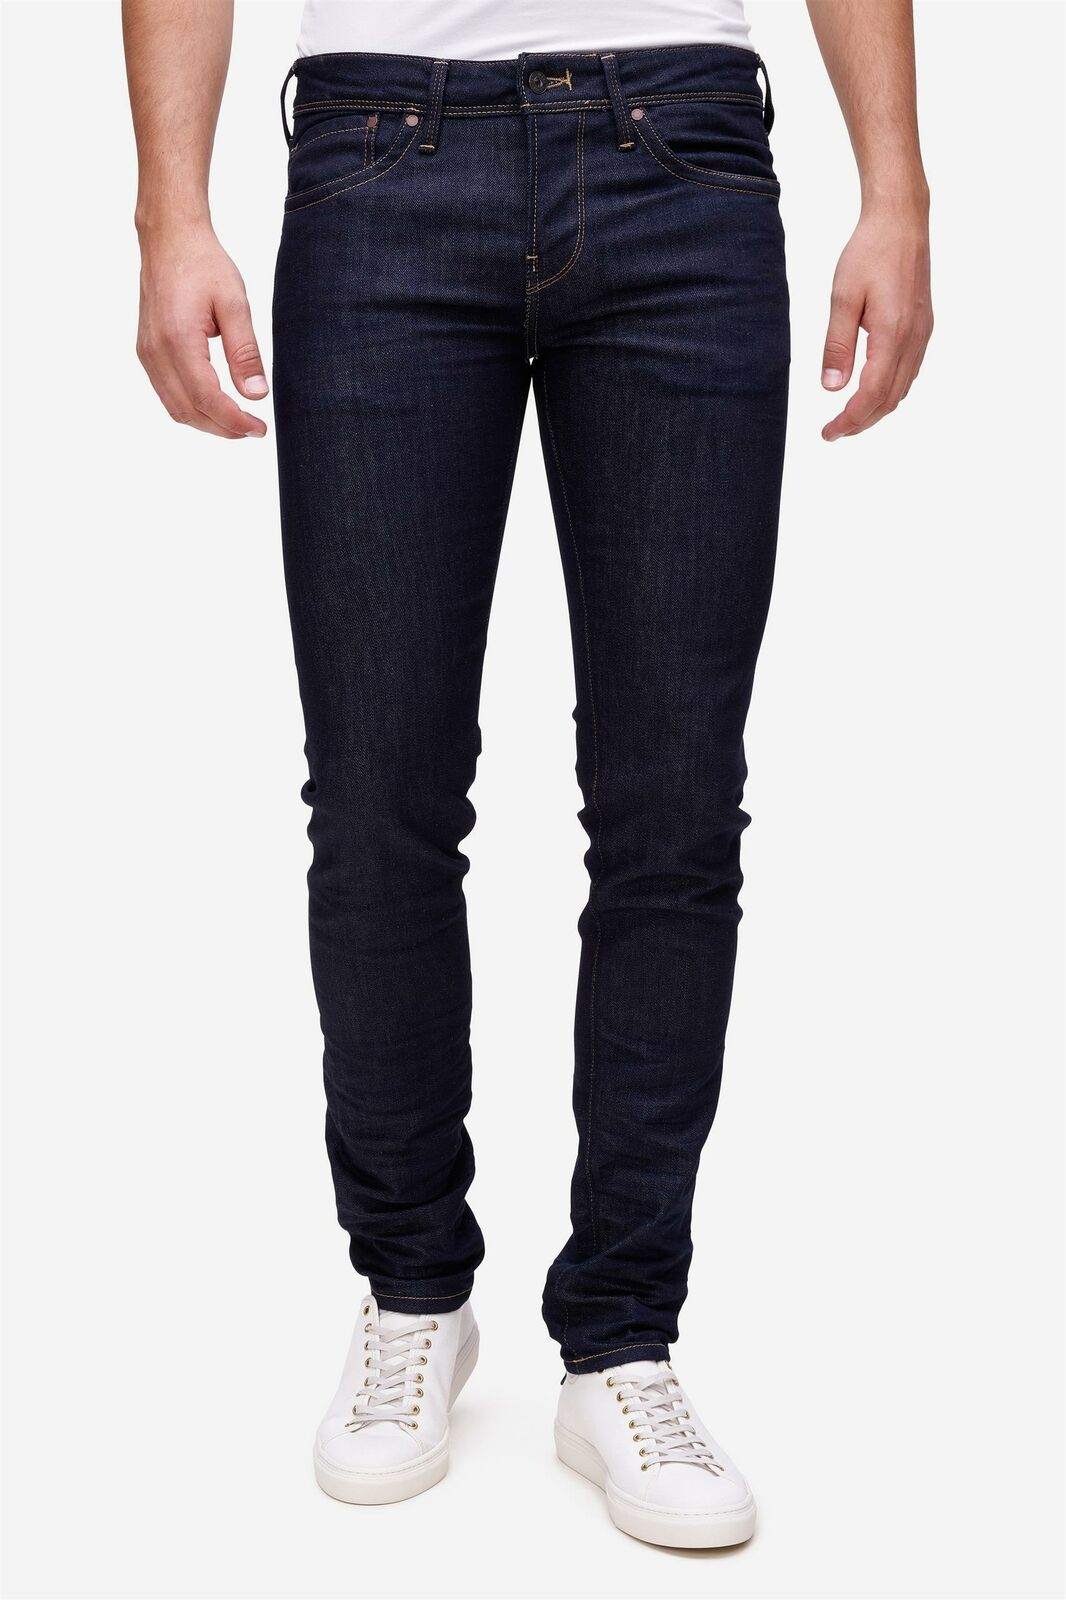 Pepe Jeans London - Jeans Herren Slim Fit Freizeit leger blau NEU: 89 €